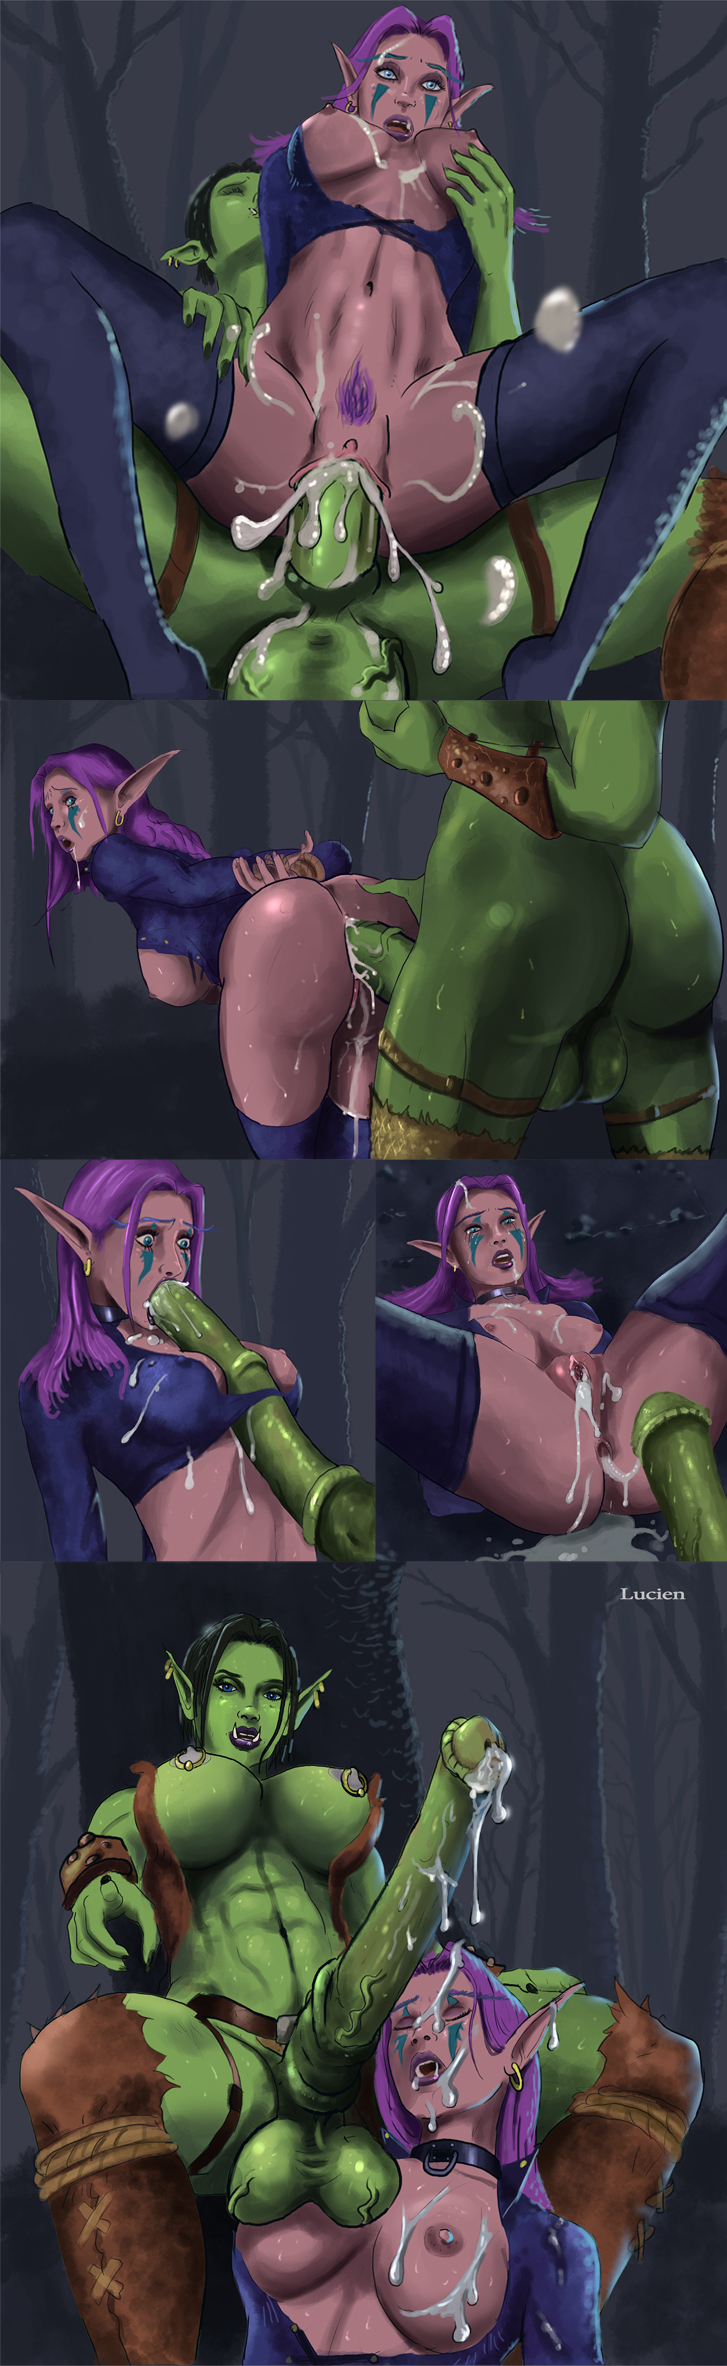 Warcraft orc raped hentai nude movie